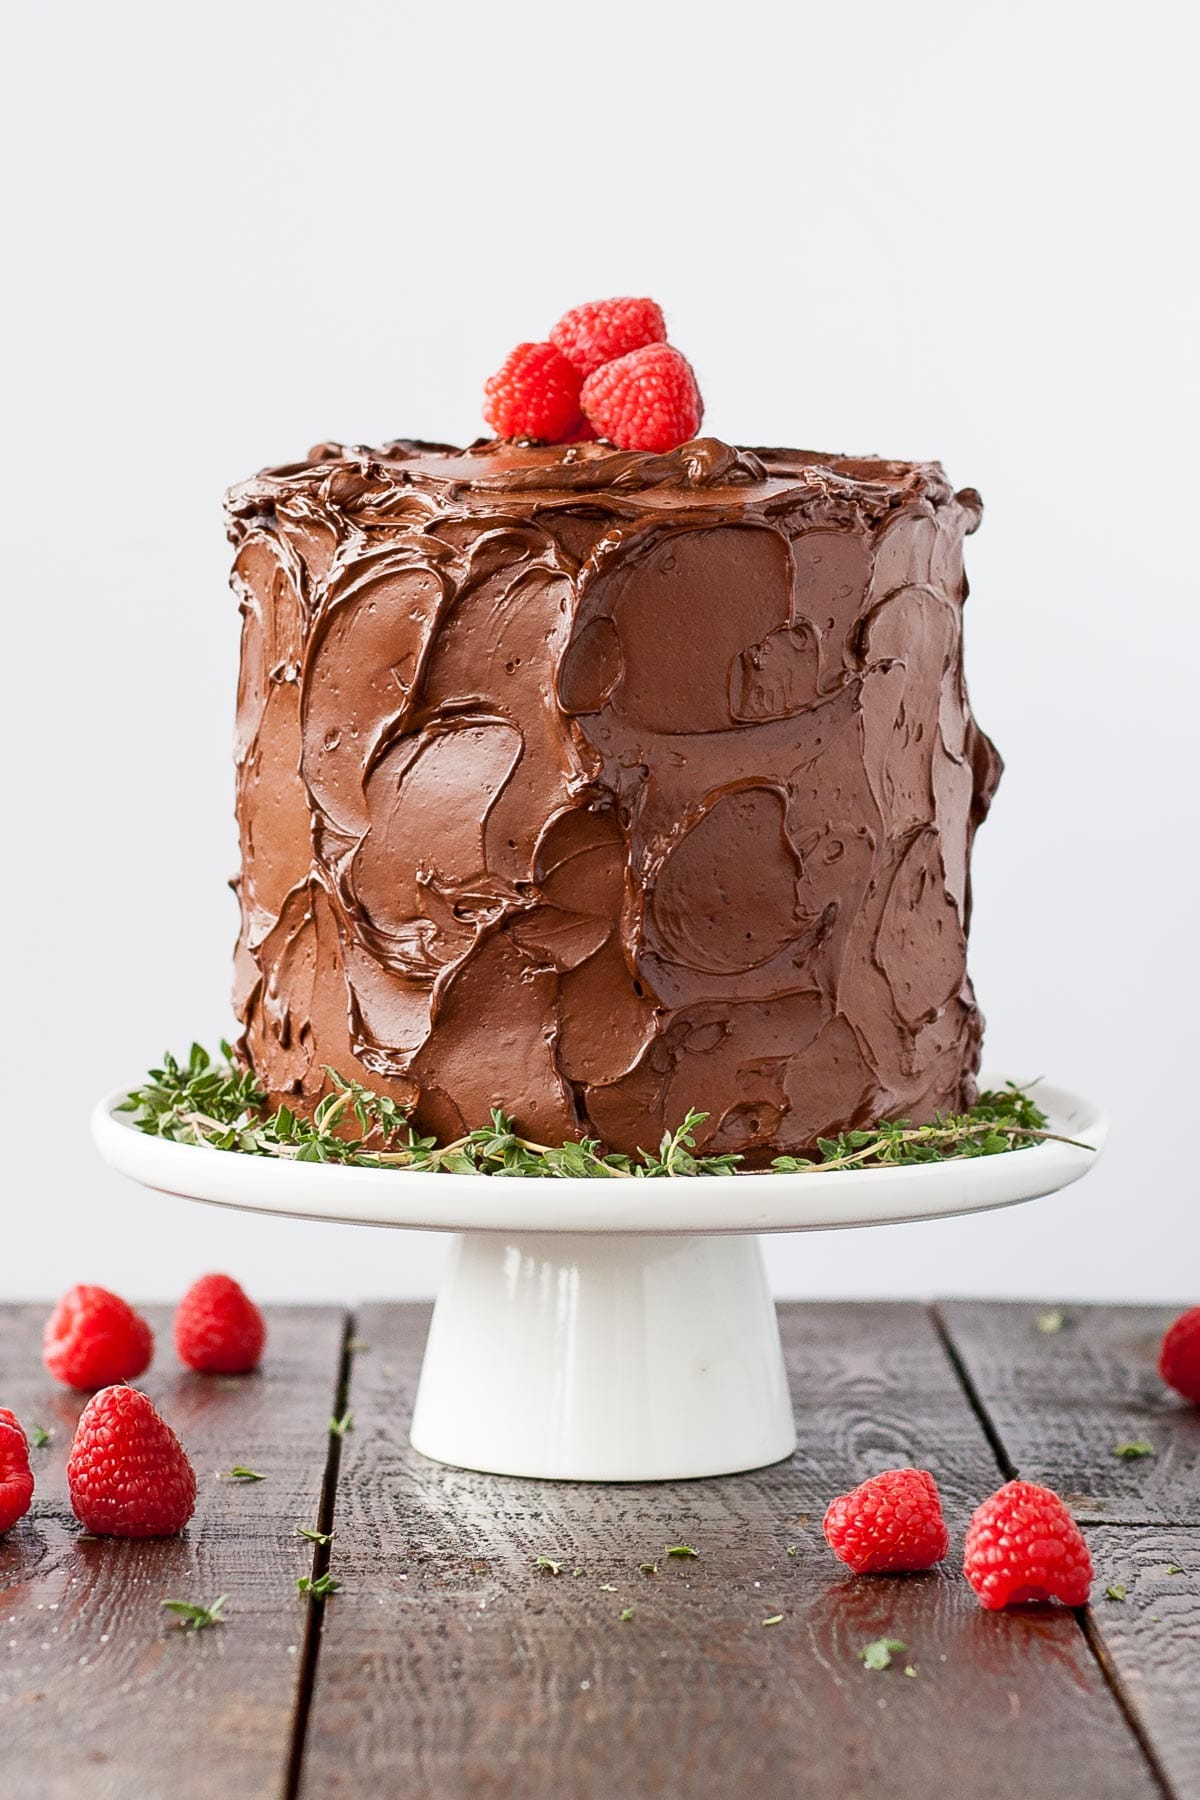 This Chocolate Raspberry Cake has six glorious layers of vanilla cake with raspberry sauce and a rich dark chocolate frosting. | livforcake.com